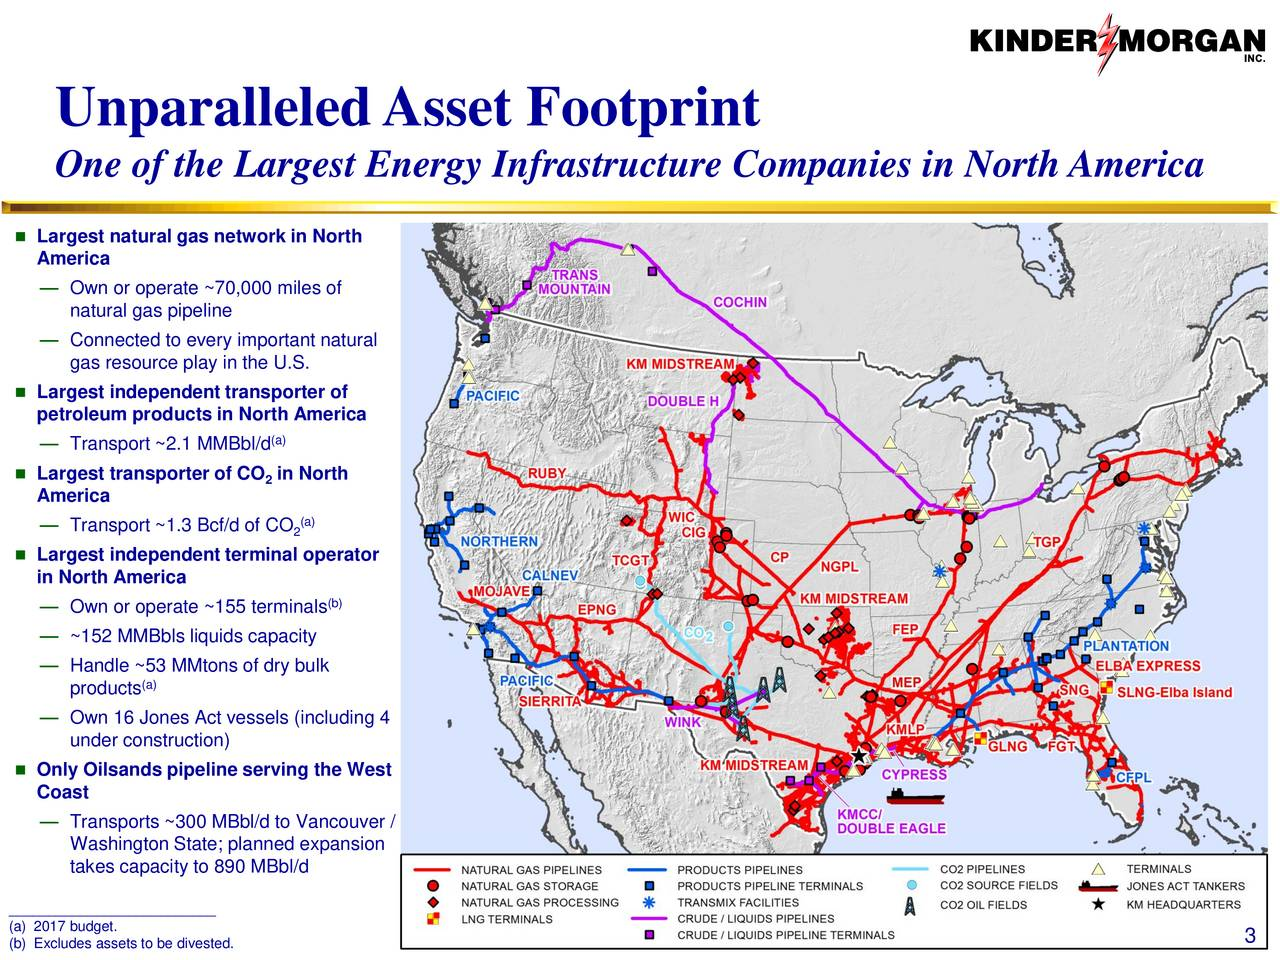 One of the Largest Energy Infrastructure Companies in North America Largest natural gas network in North America Own or operate ~70,000 miles of natural gas pipeline Connected to every important natural gas resource play in the U.S. Largest independent transporter of petroleum products in North America Transport ~2.1 MMBbl/d (a) Largest transporter of CO2in North America Transport ~1.3 Bcf/d of CO2(a) Largest independent terminal operator in North America Own or operate ~155 terminals (b) ~152 MMBbls liquids capacity Handle ~53 MMtons of dry bulk products(a) Own 16 Jones Act vessels (including 4 under construction) Only Oilsands pipeline serving the West Coast Transports ~300 MBbl/d to Vancouver / Washington State; planned expansion takes capacity to 890 MBbl/d __________________________ (a) 2017 budget. (b) Excludes assets to be divested. 3